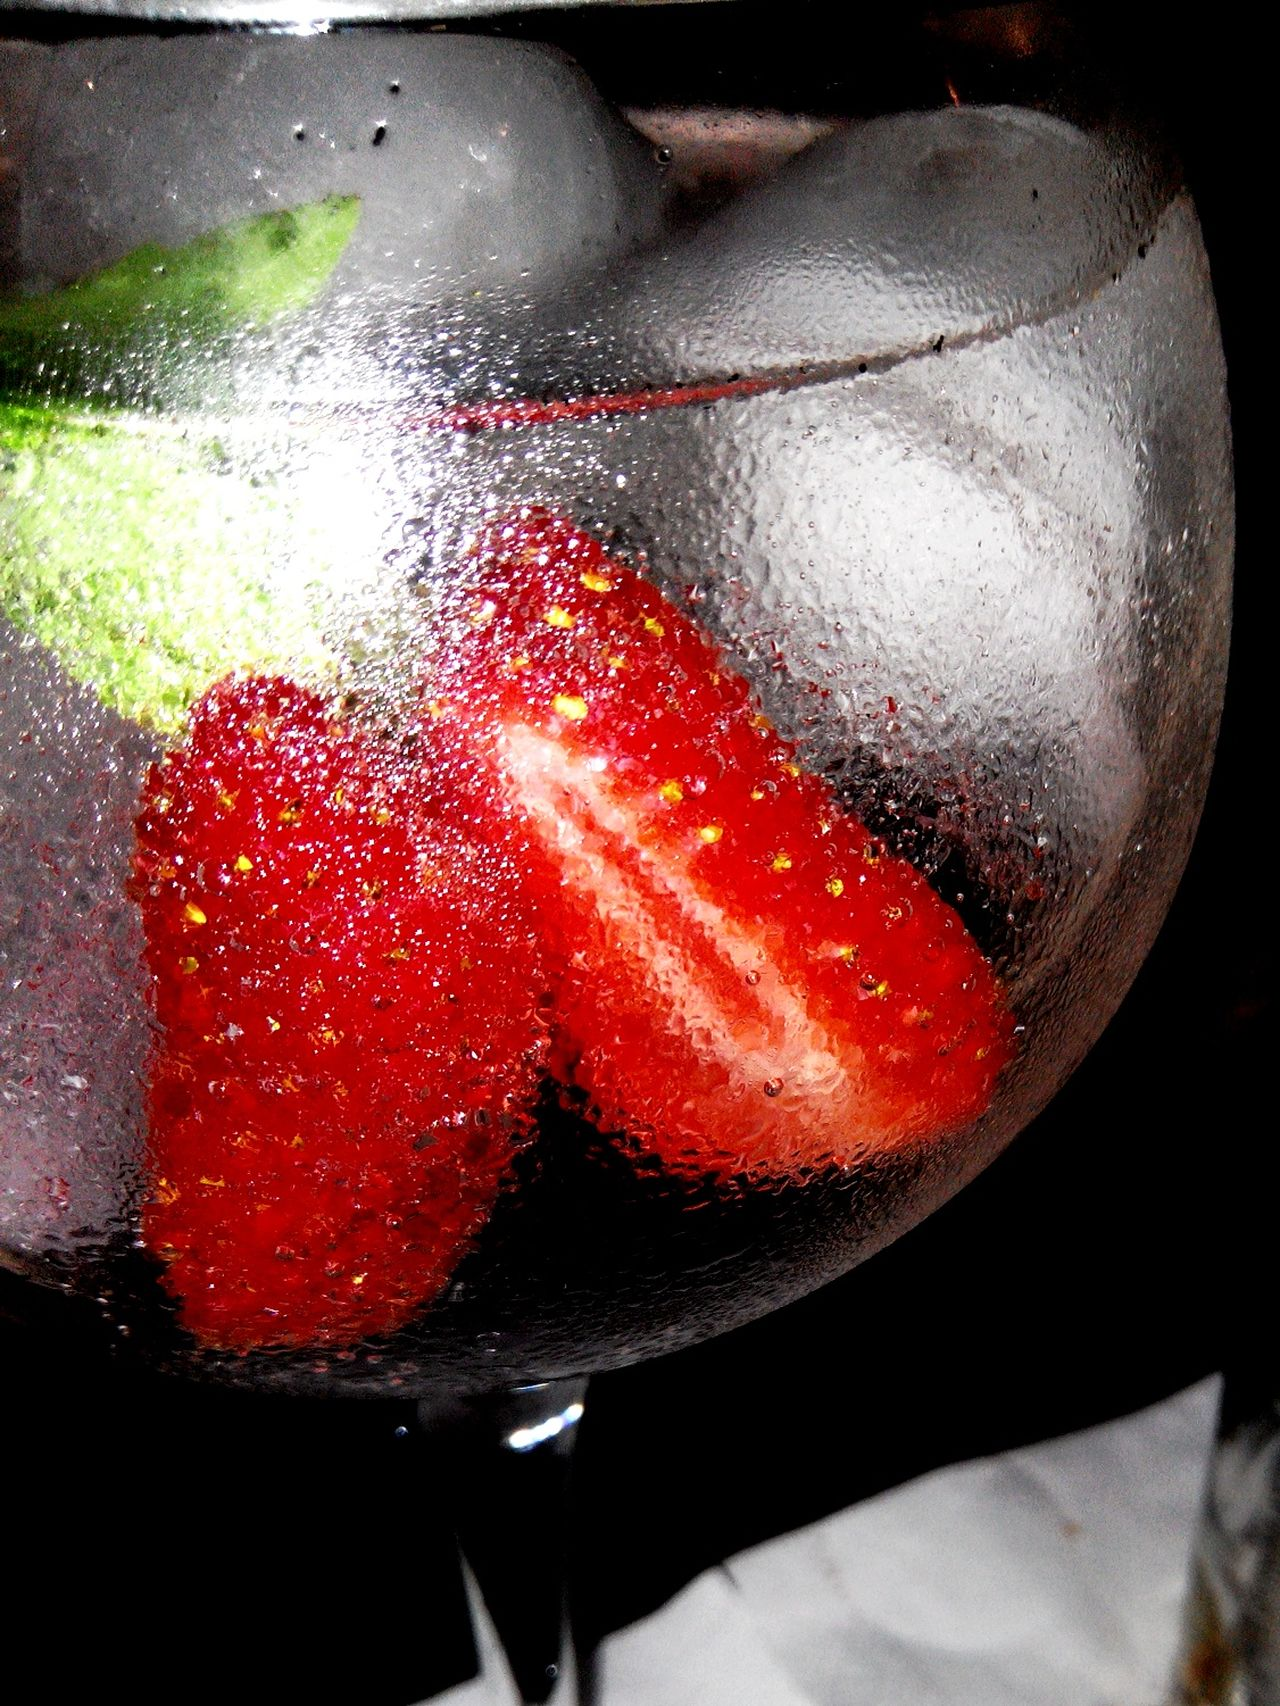 A Taste Of Life Gin Tonic Ginstrawberry Strawberry Drinks GIN Tonicwater Ice Afterhour Drinkgin